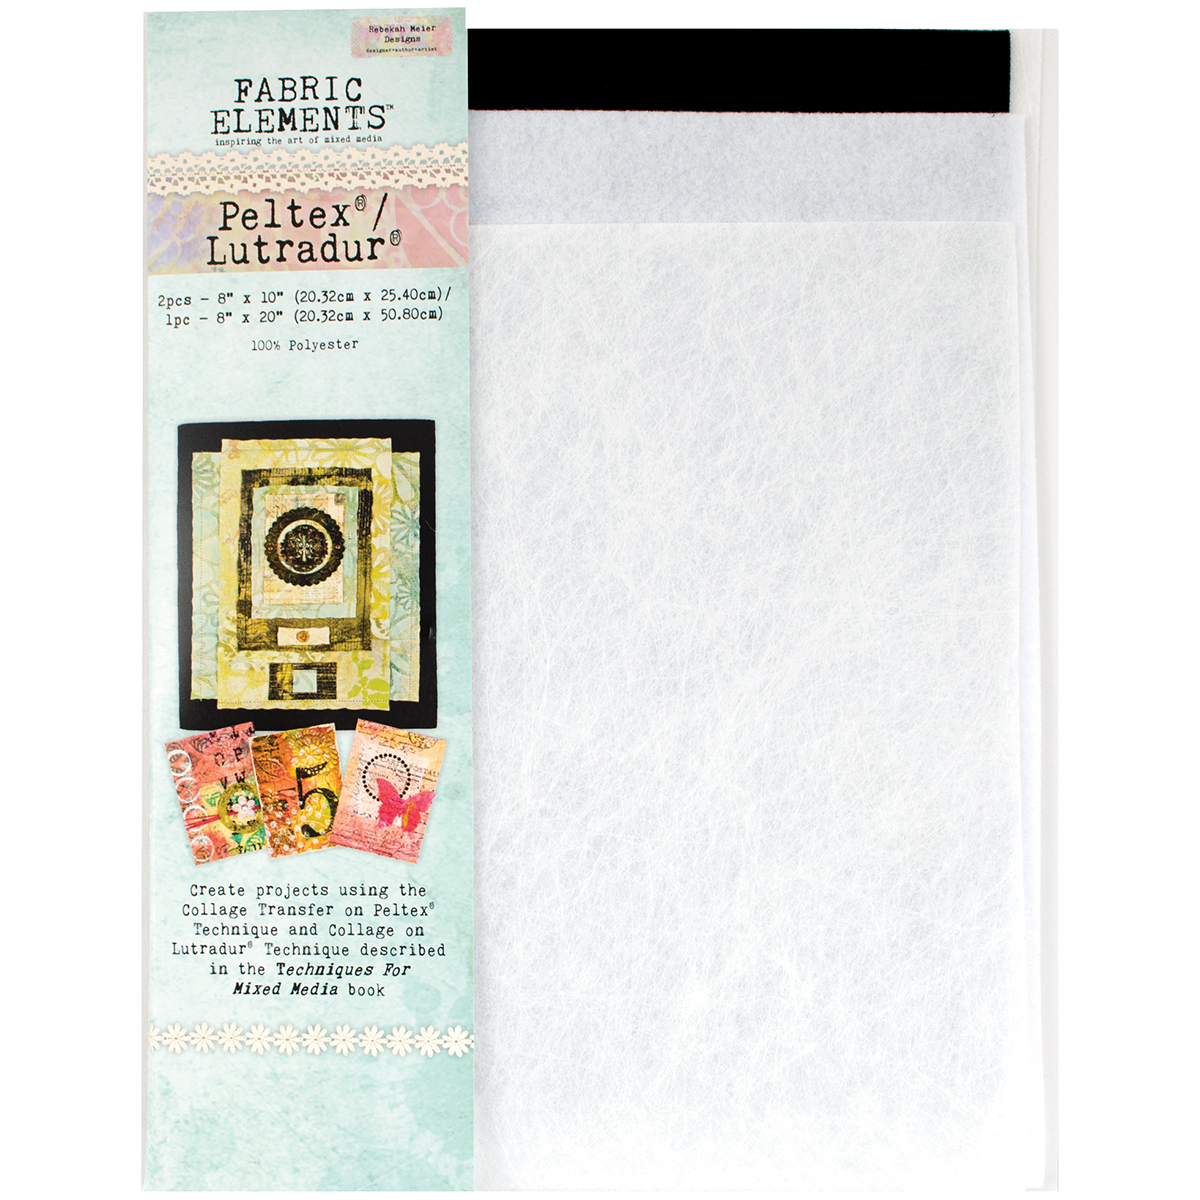 "Fabric Elements 8""X10"" Peltex/8""X20"" Lutradur 3pcs-"